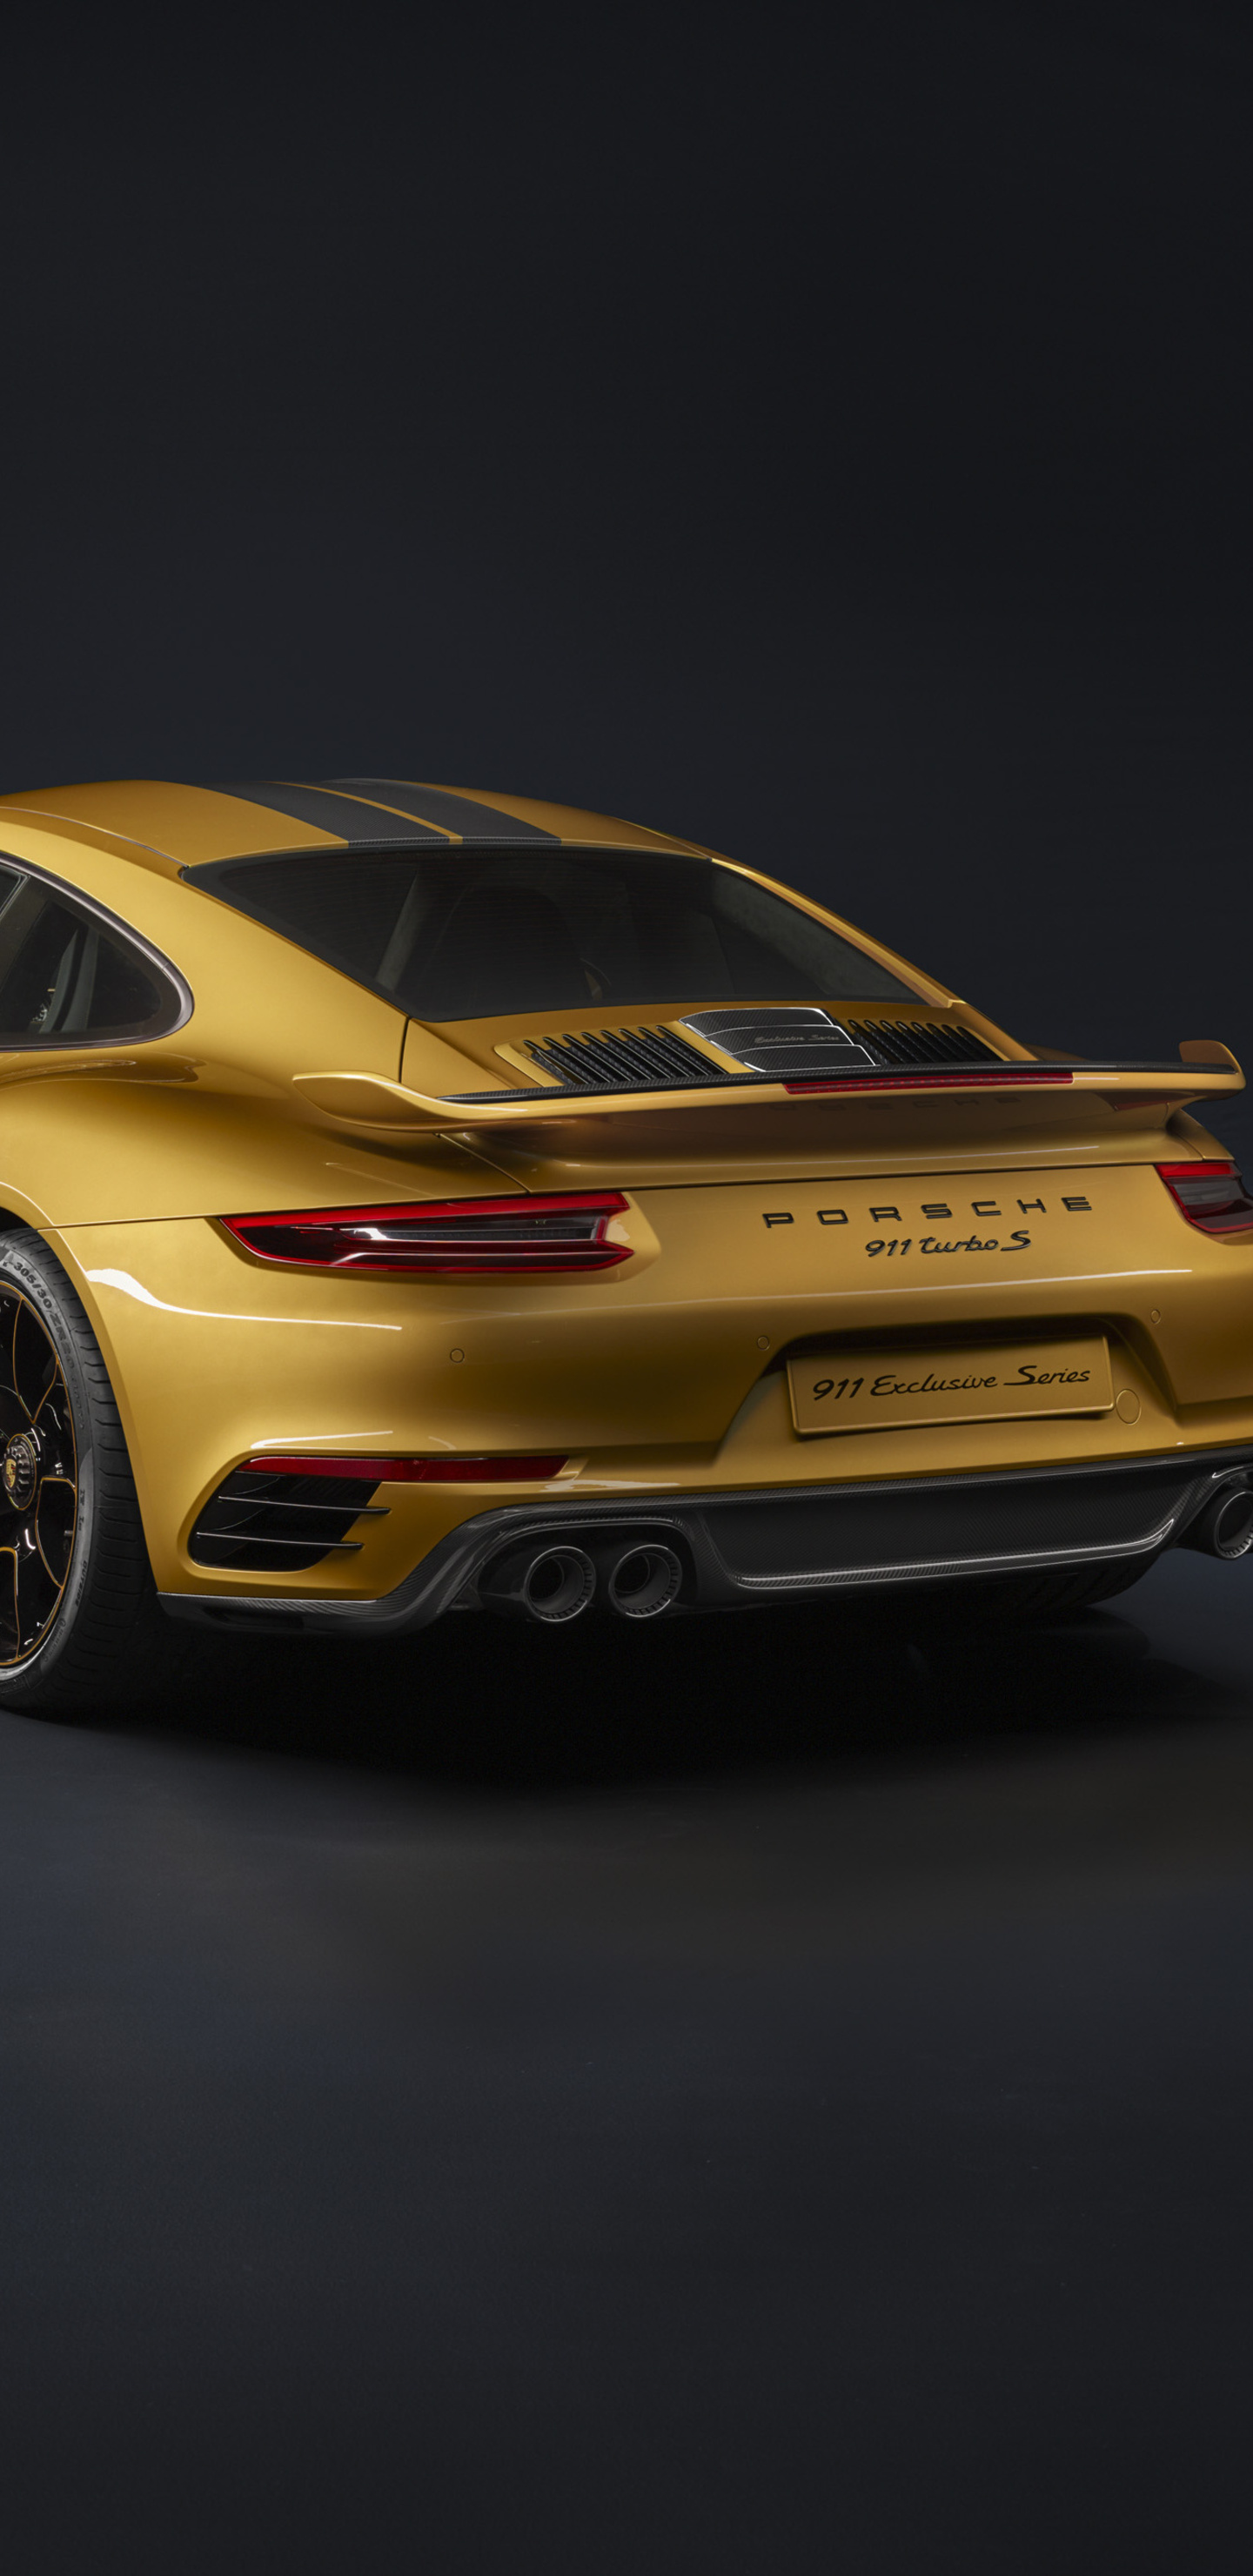 1440x2960 porsche 911 turbo s 2017 samsung galaxy note 9 8 - Samsung s9 wallpaper 4k ...